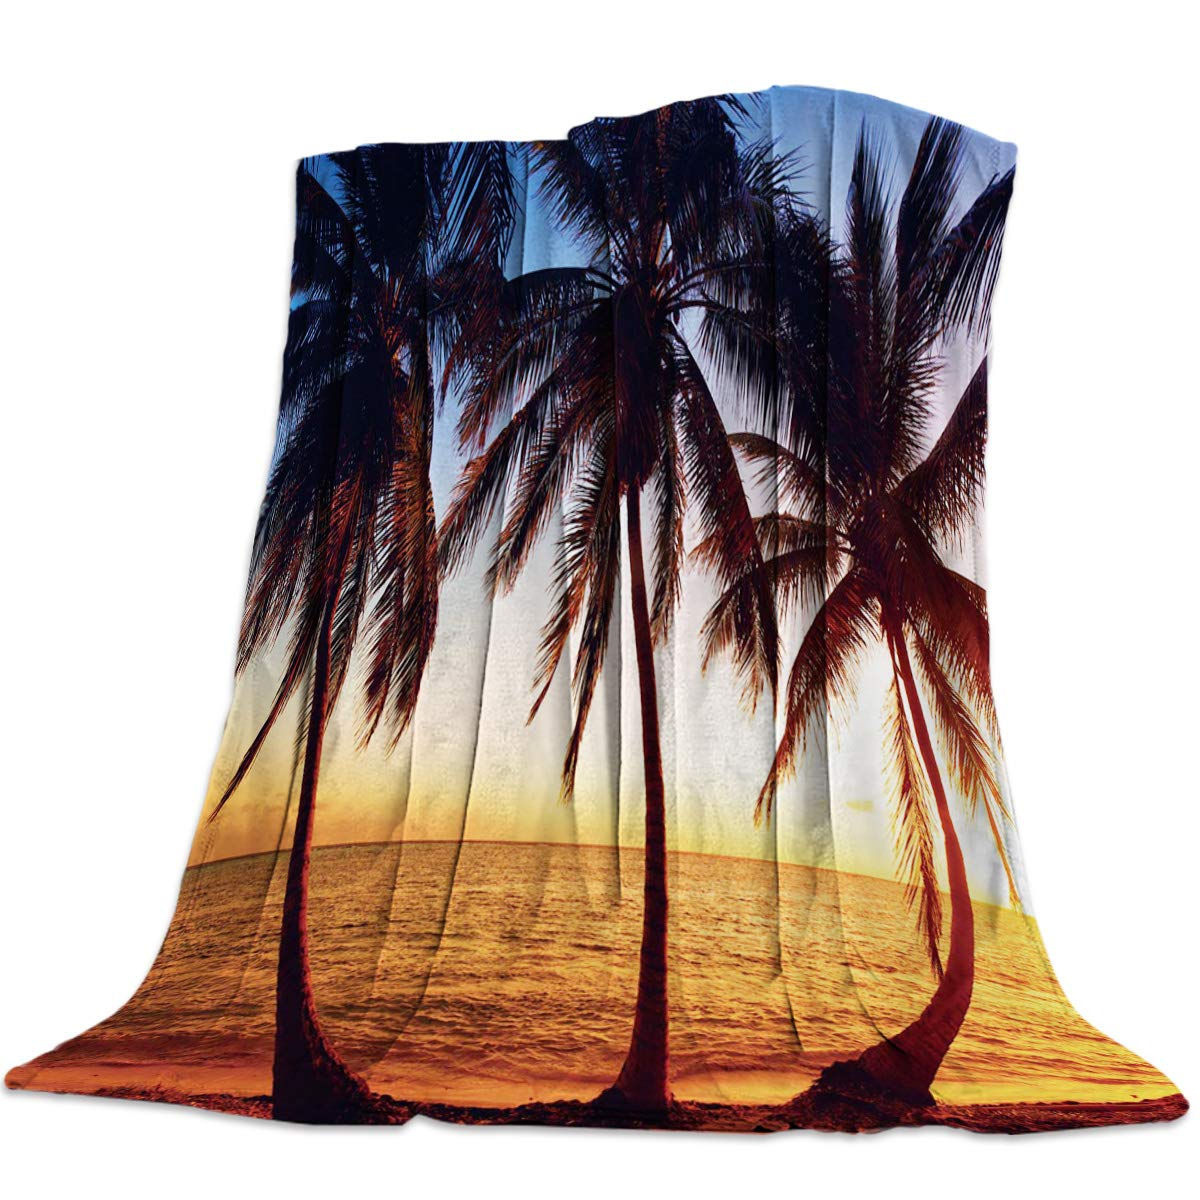 Coconut Beach14yag1615 49x59inch=125x150cm YEHO Art Gallery 49x59 Inch Flannel Fleece Bed Blanket Soft ThrowBlankets for Girls Boys,The Scenery of Sunset Coconut,Cozy Lightweight Blankets for Bedroom Living Room Sofa Couch